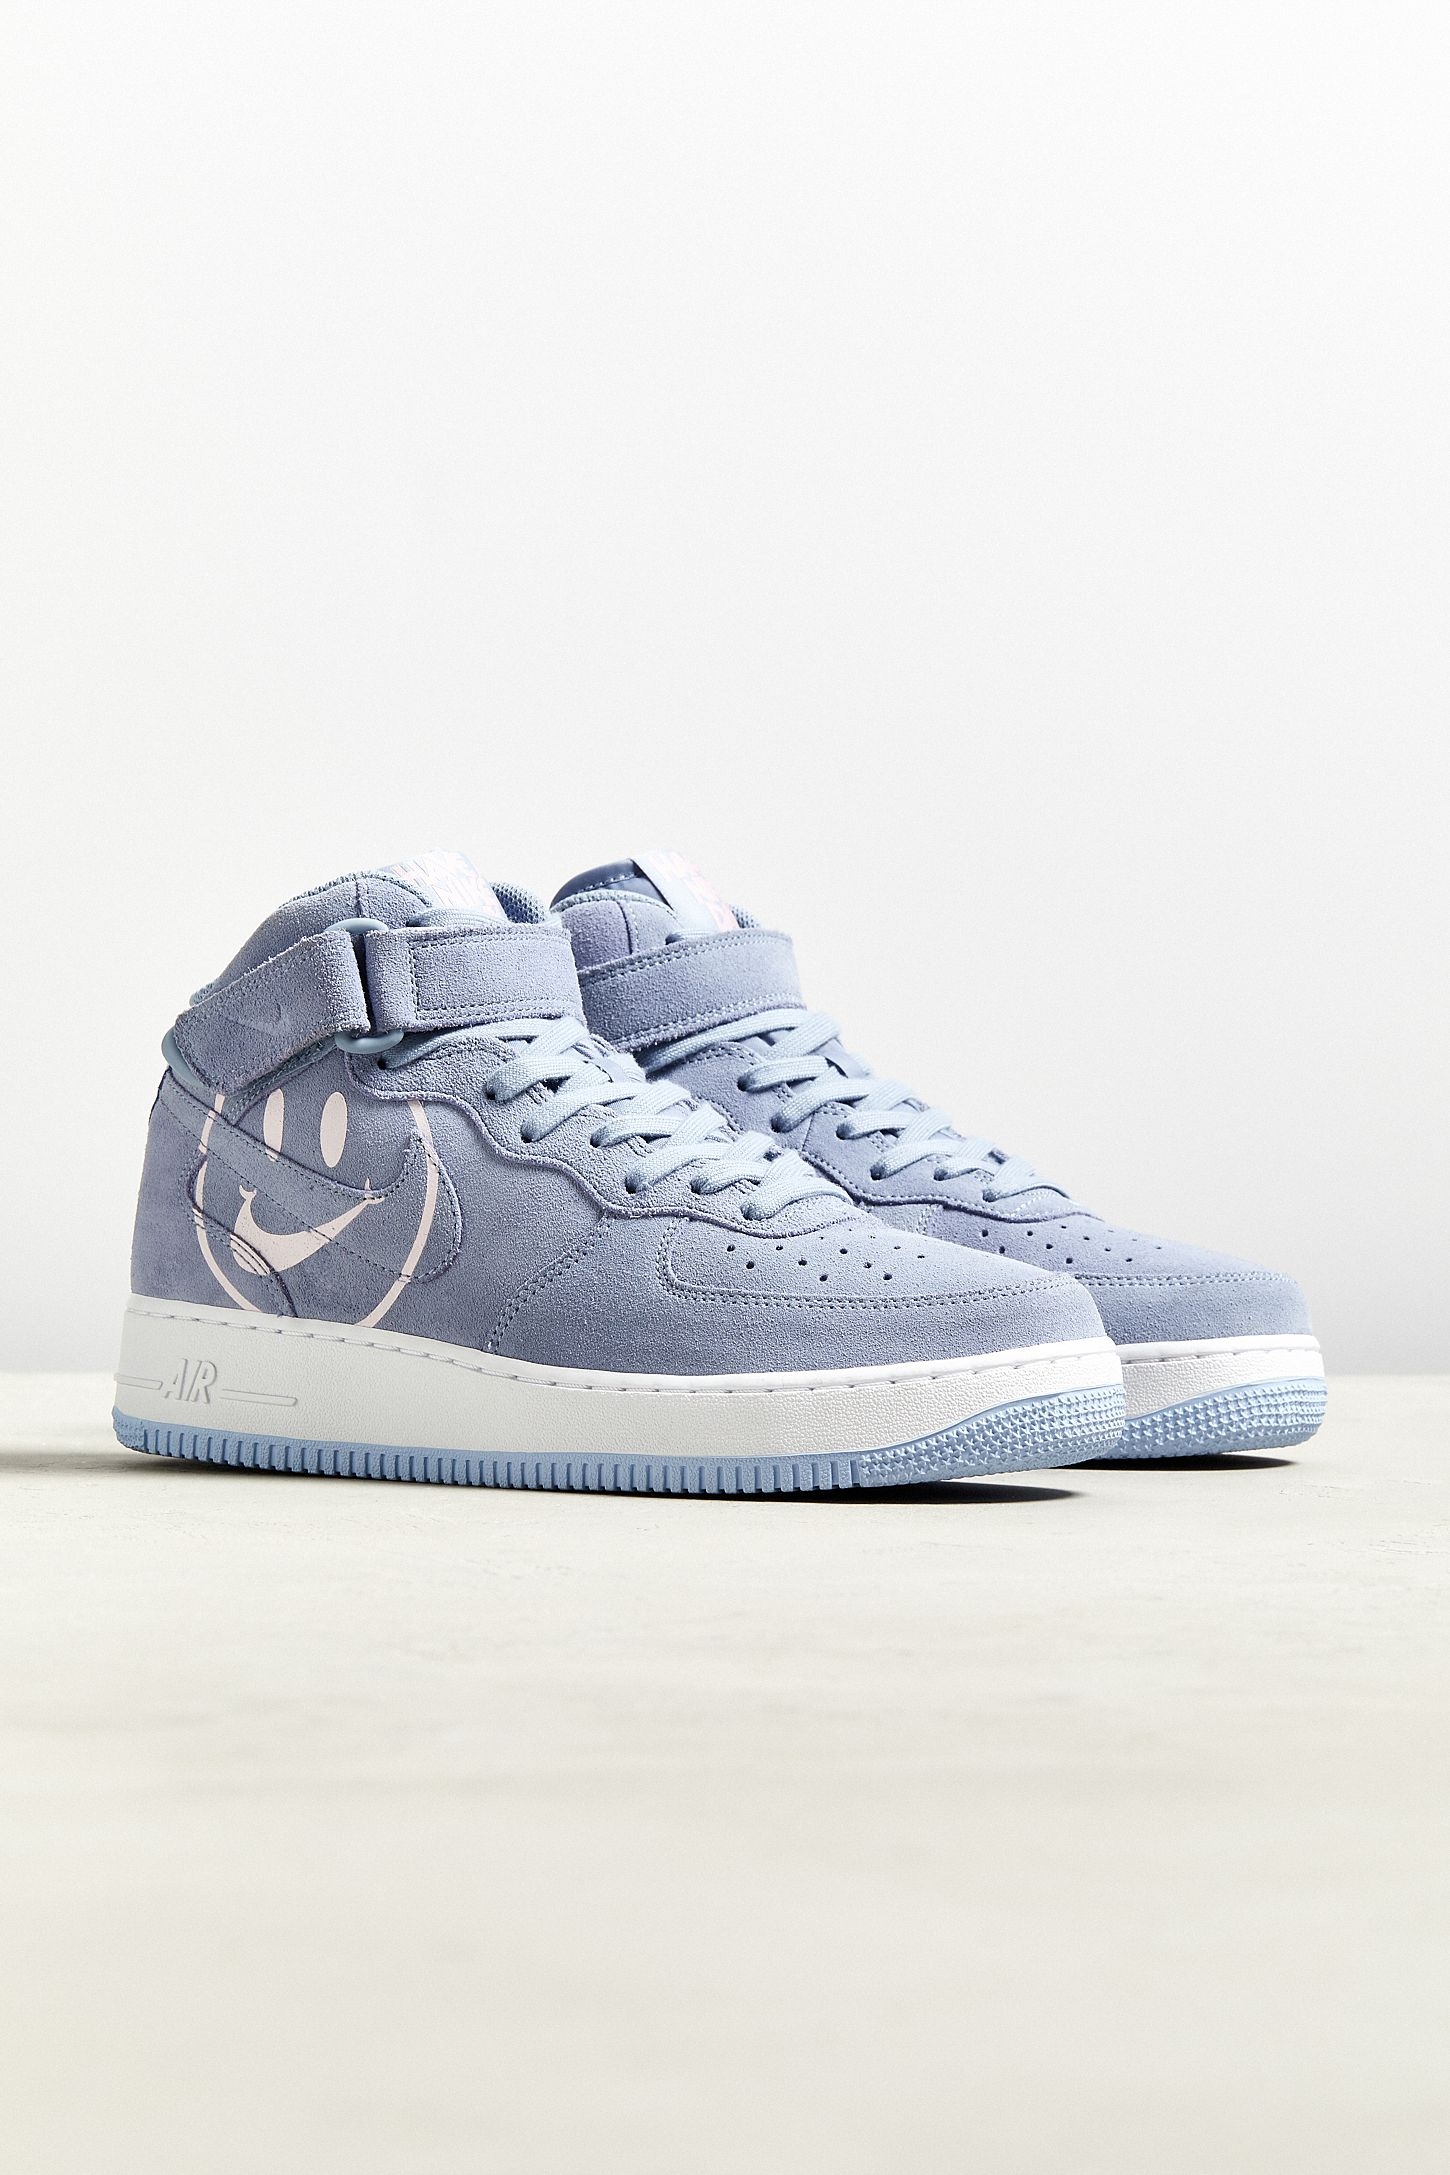 Nike Air Force 1 Mid '07 Have A Nice Day Sneaker